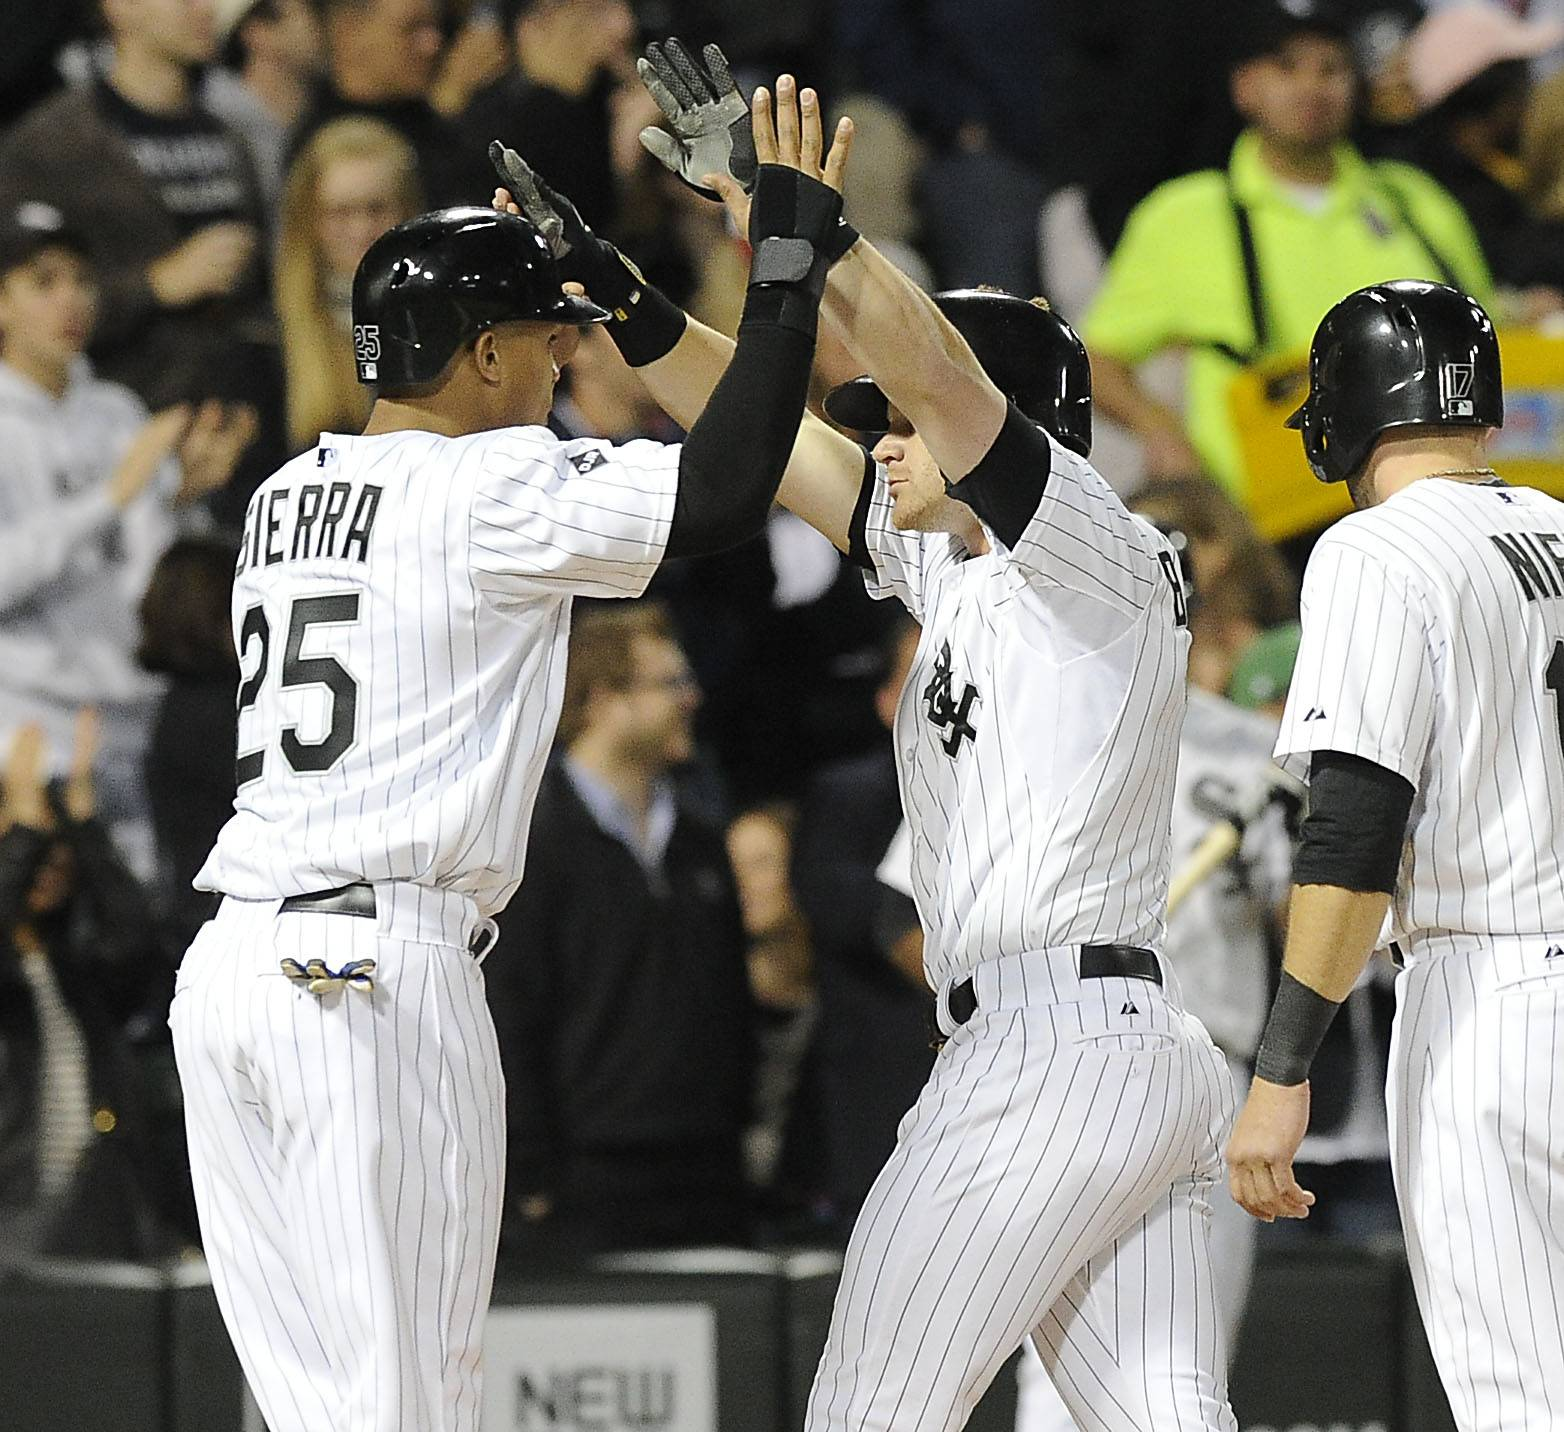 White Sox second baseman Gordon Beckham greets Moises Sierra at home plate after his three-run homer in the fourth inning of the Crosstown Classic.